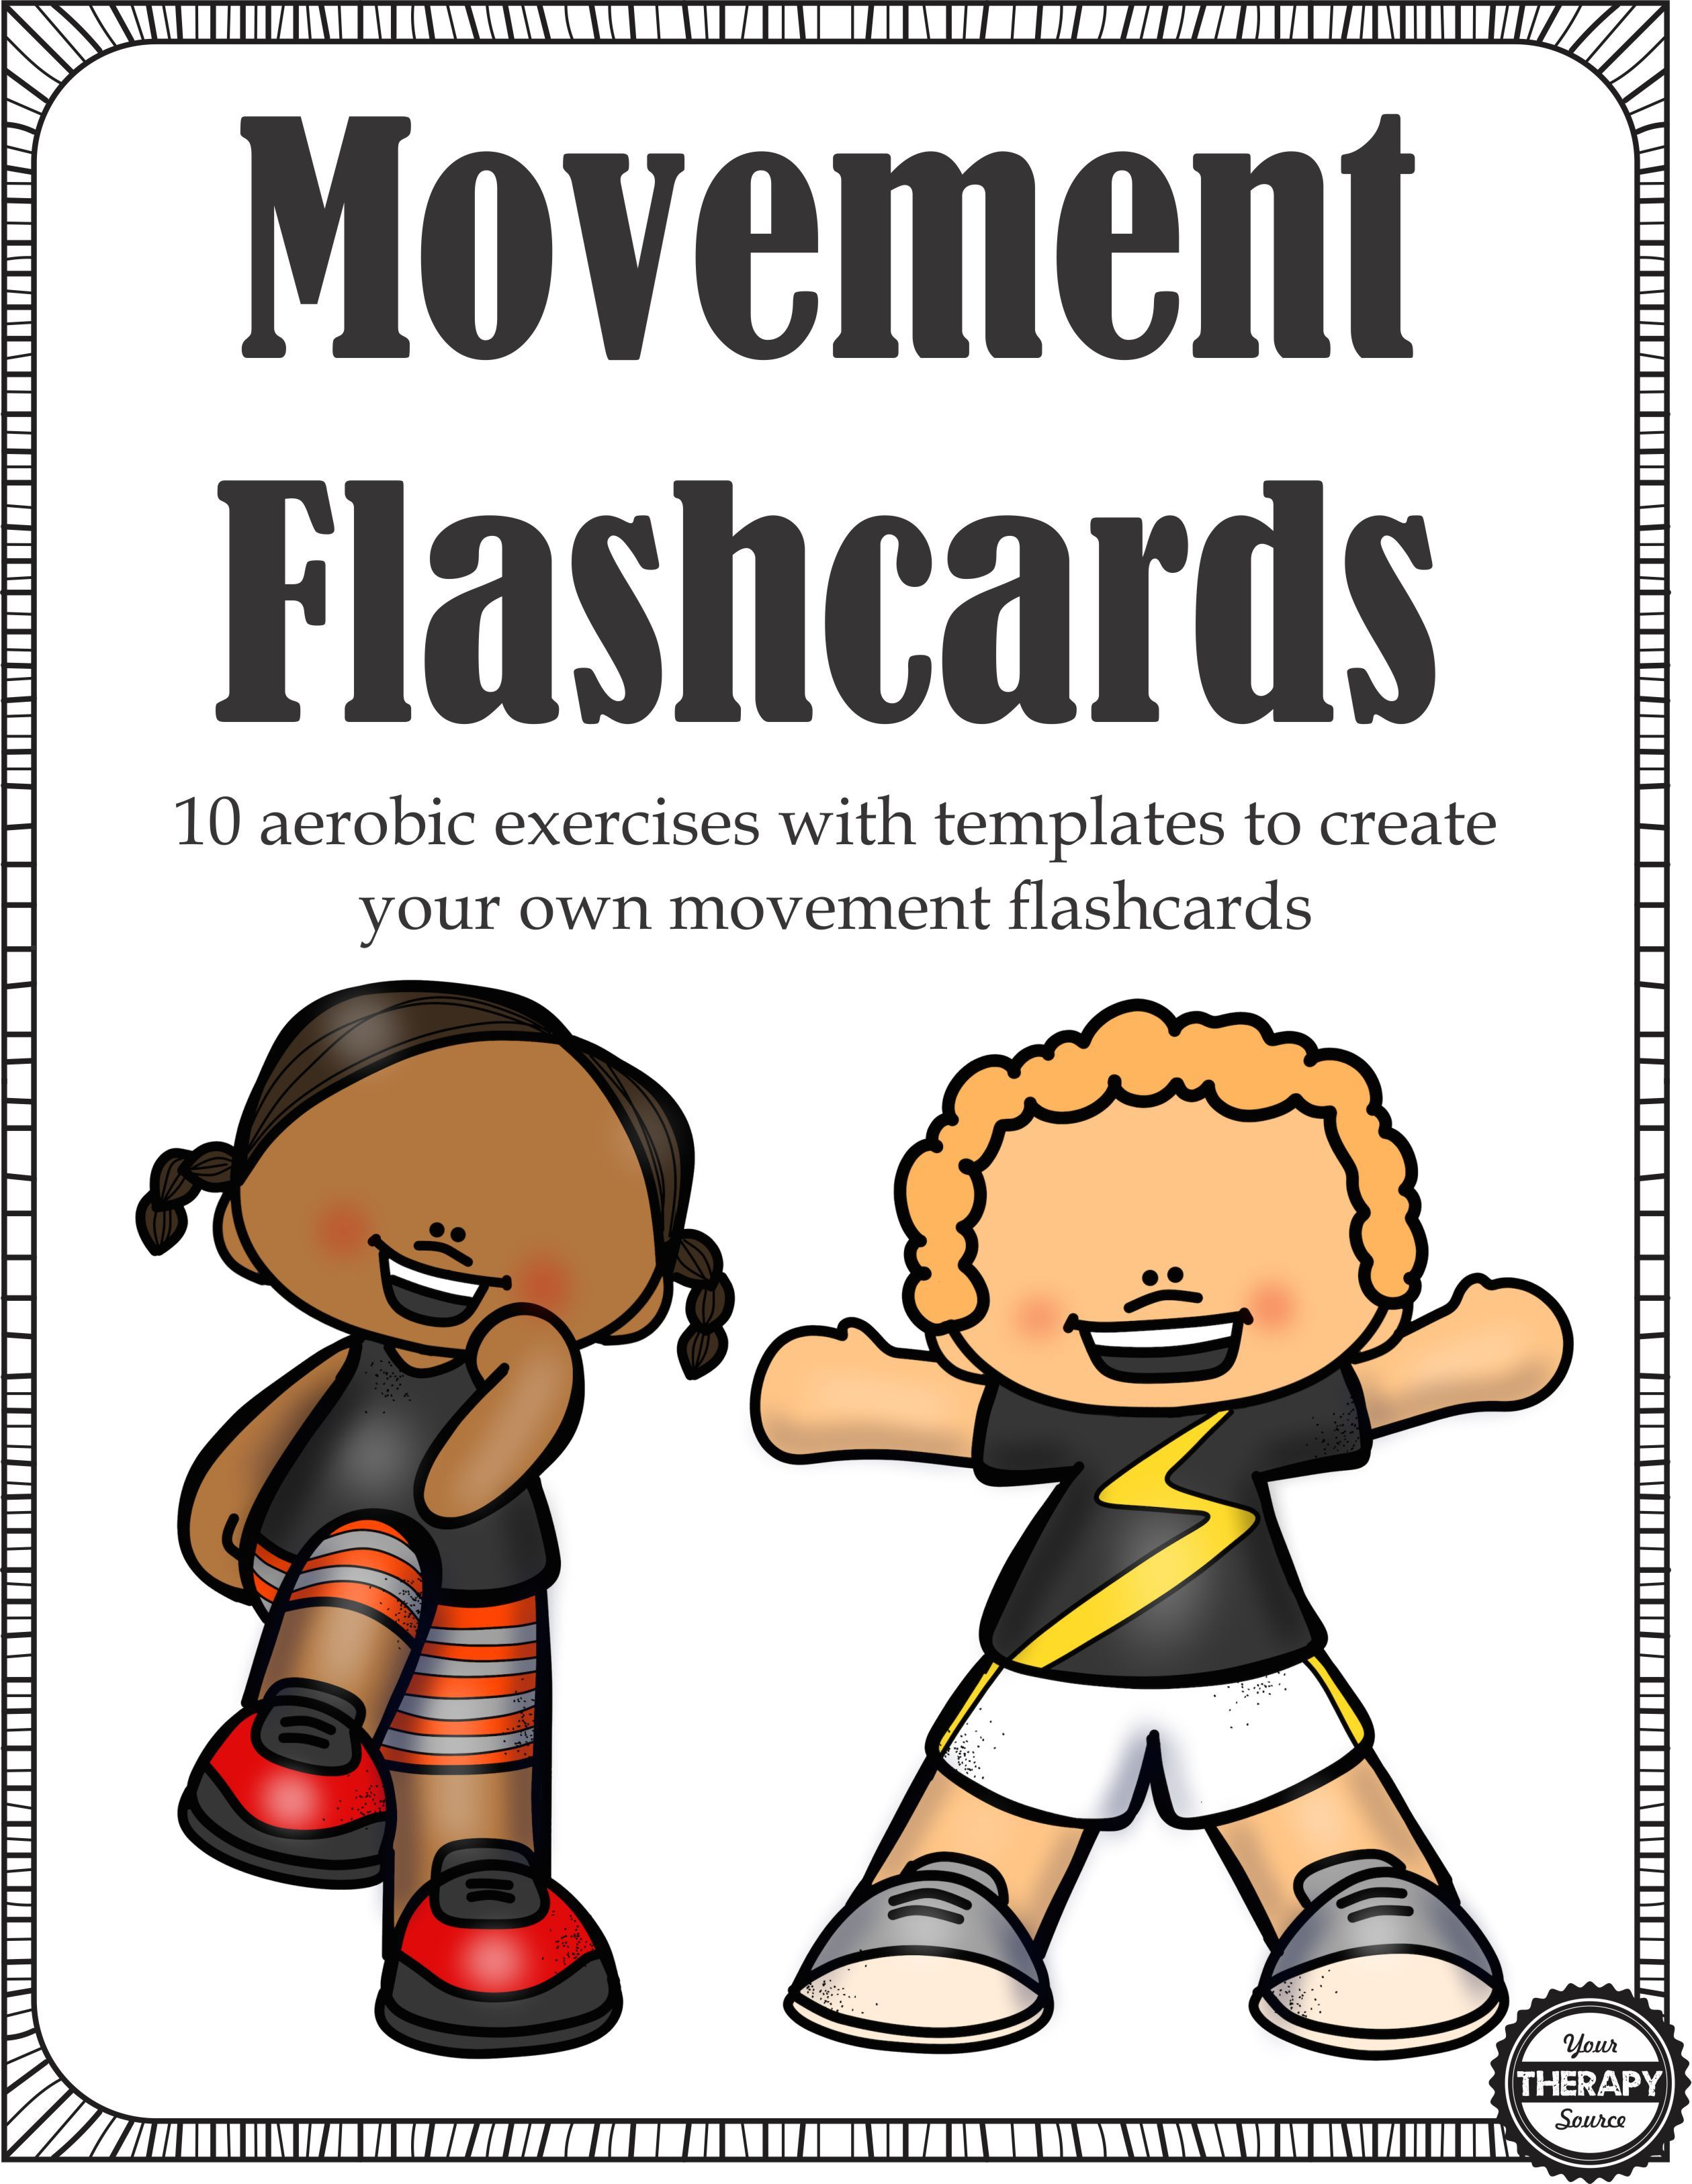 Movement Flashcards Digital Download Includes 10 Aerobic